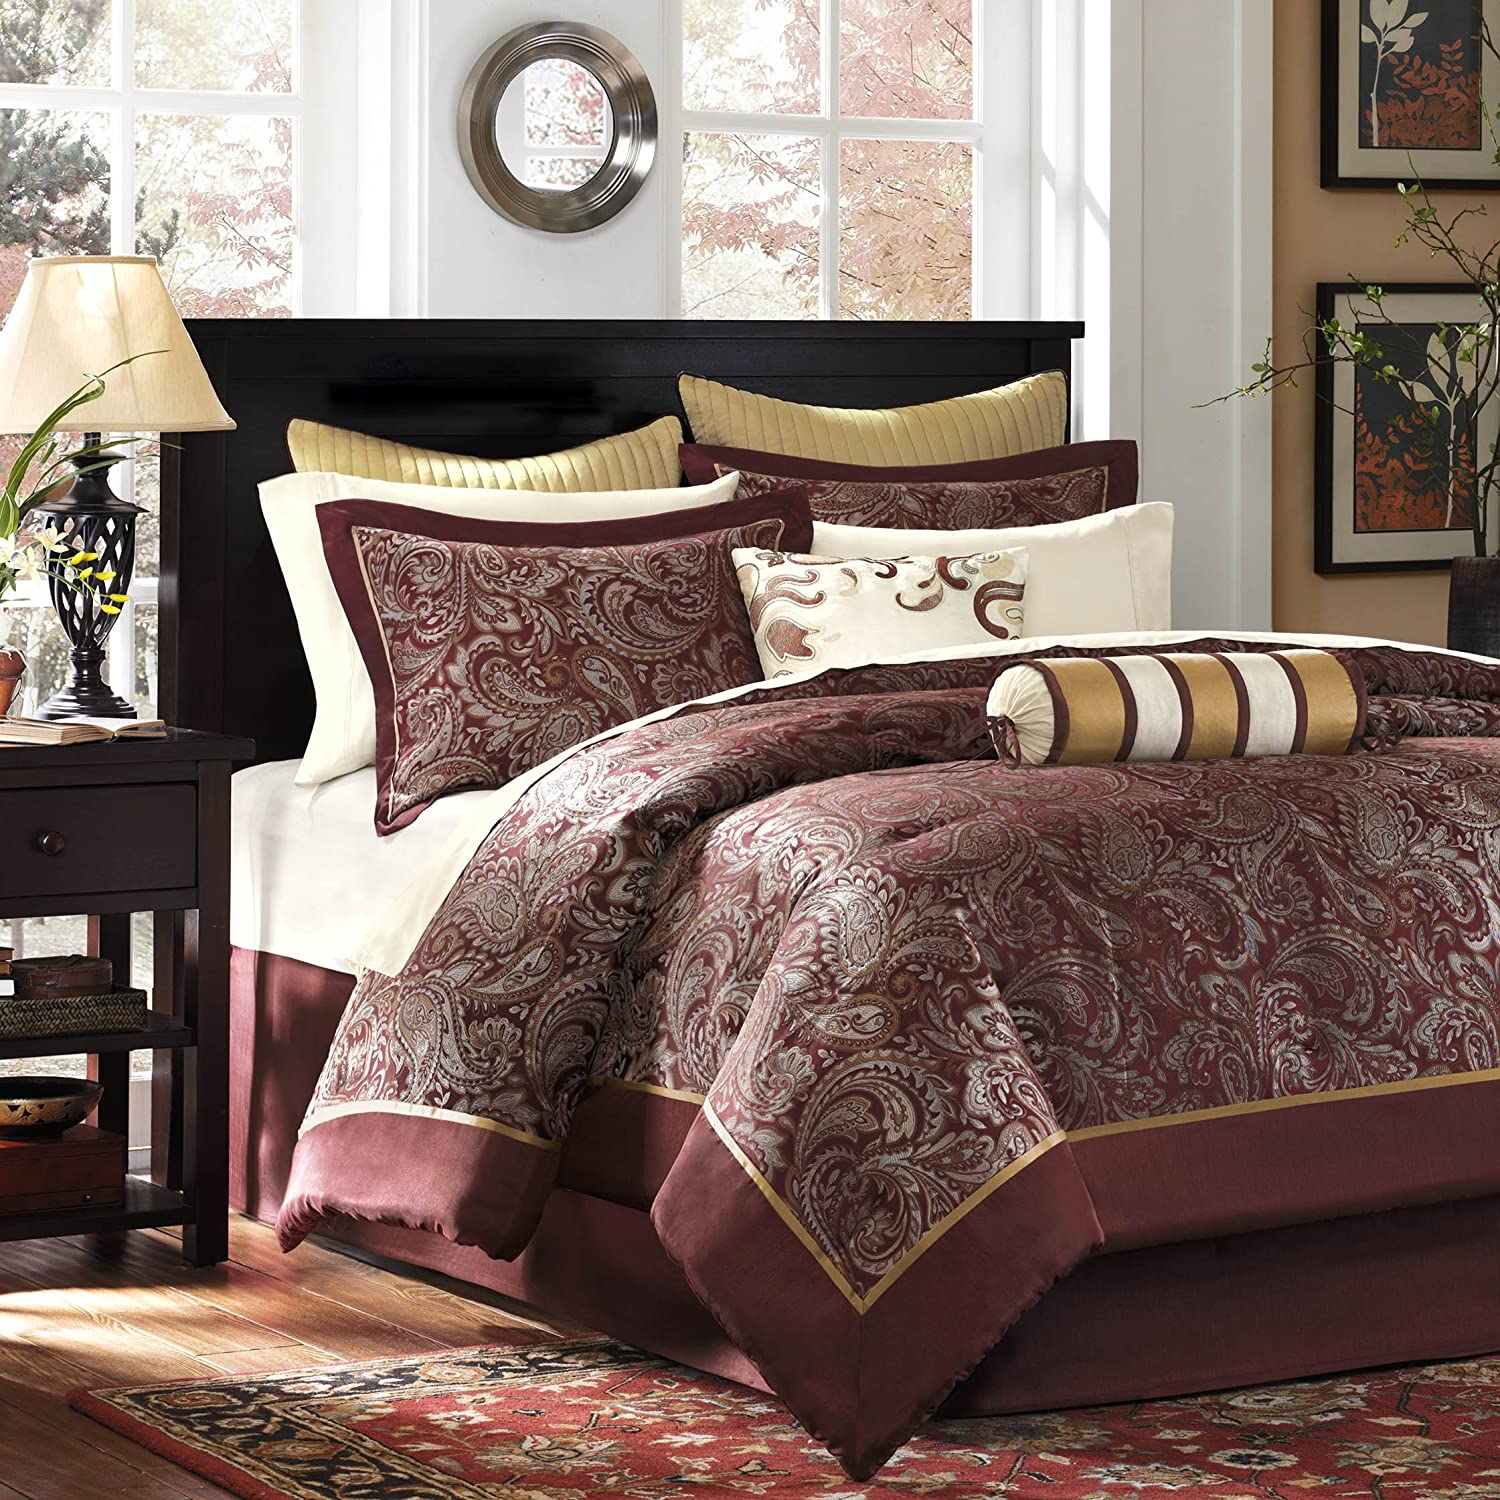 Madison Park Aubrey Cal King Size Bed Comforter Set Bed In A Bag - Blue, Brown , Paisley Jacquard – 12 Pieces Bedding Sets – Ultra Soft Microfiber Bedroom